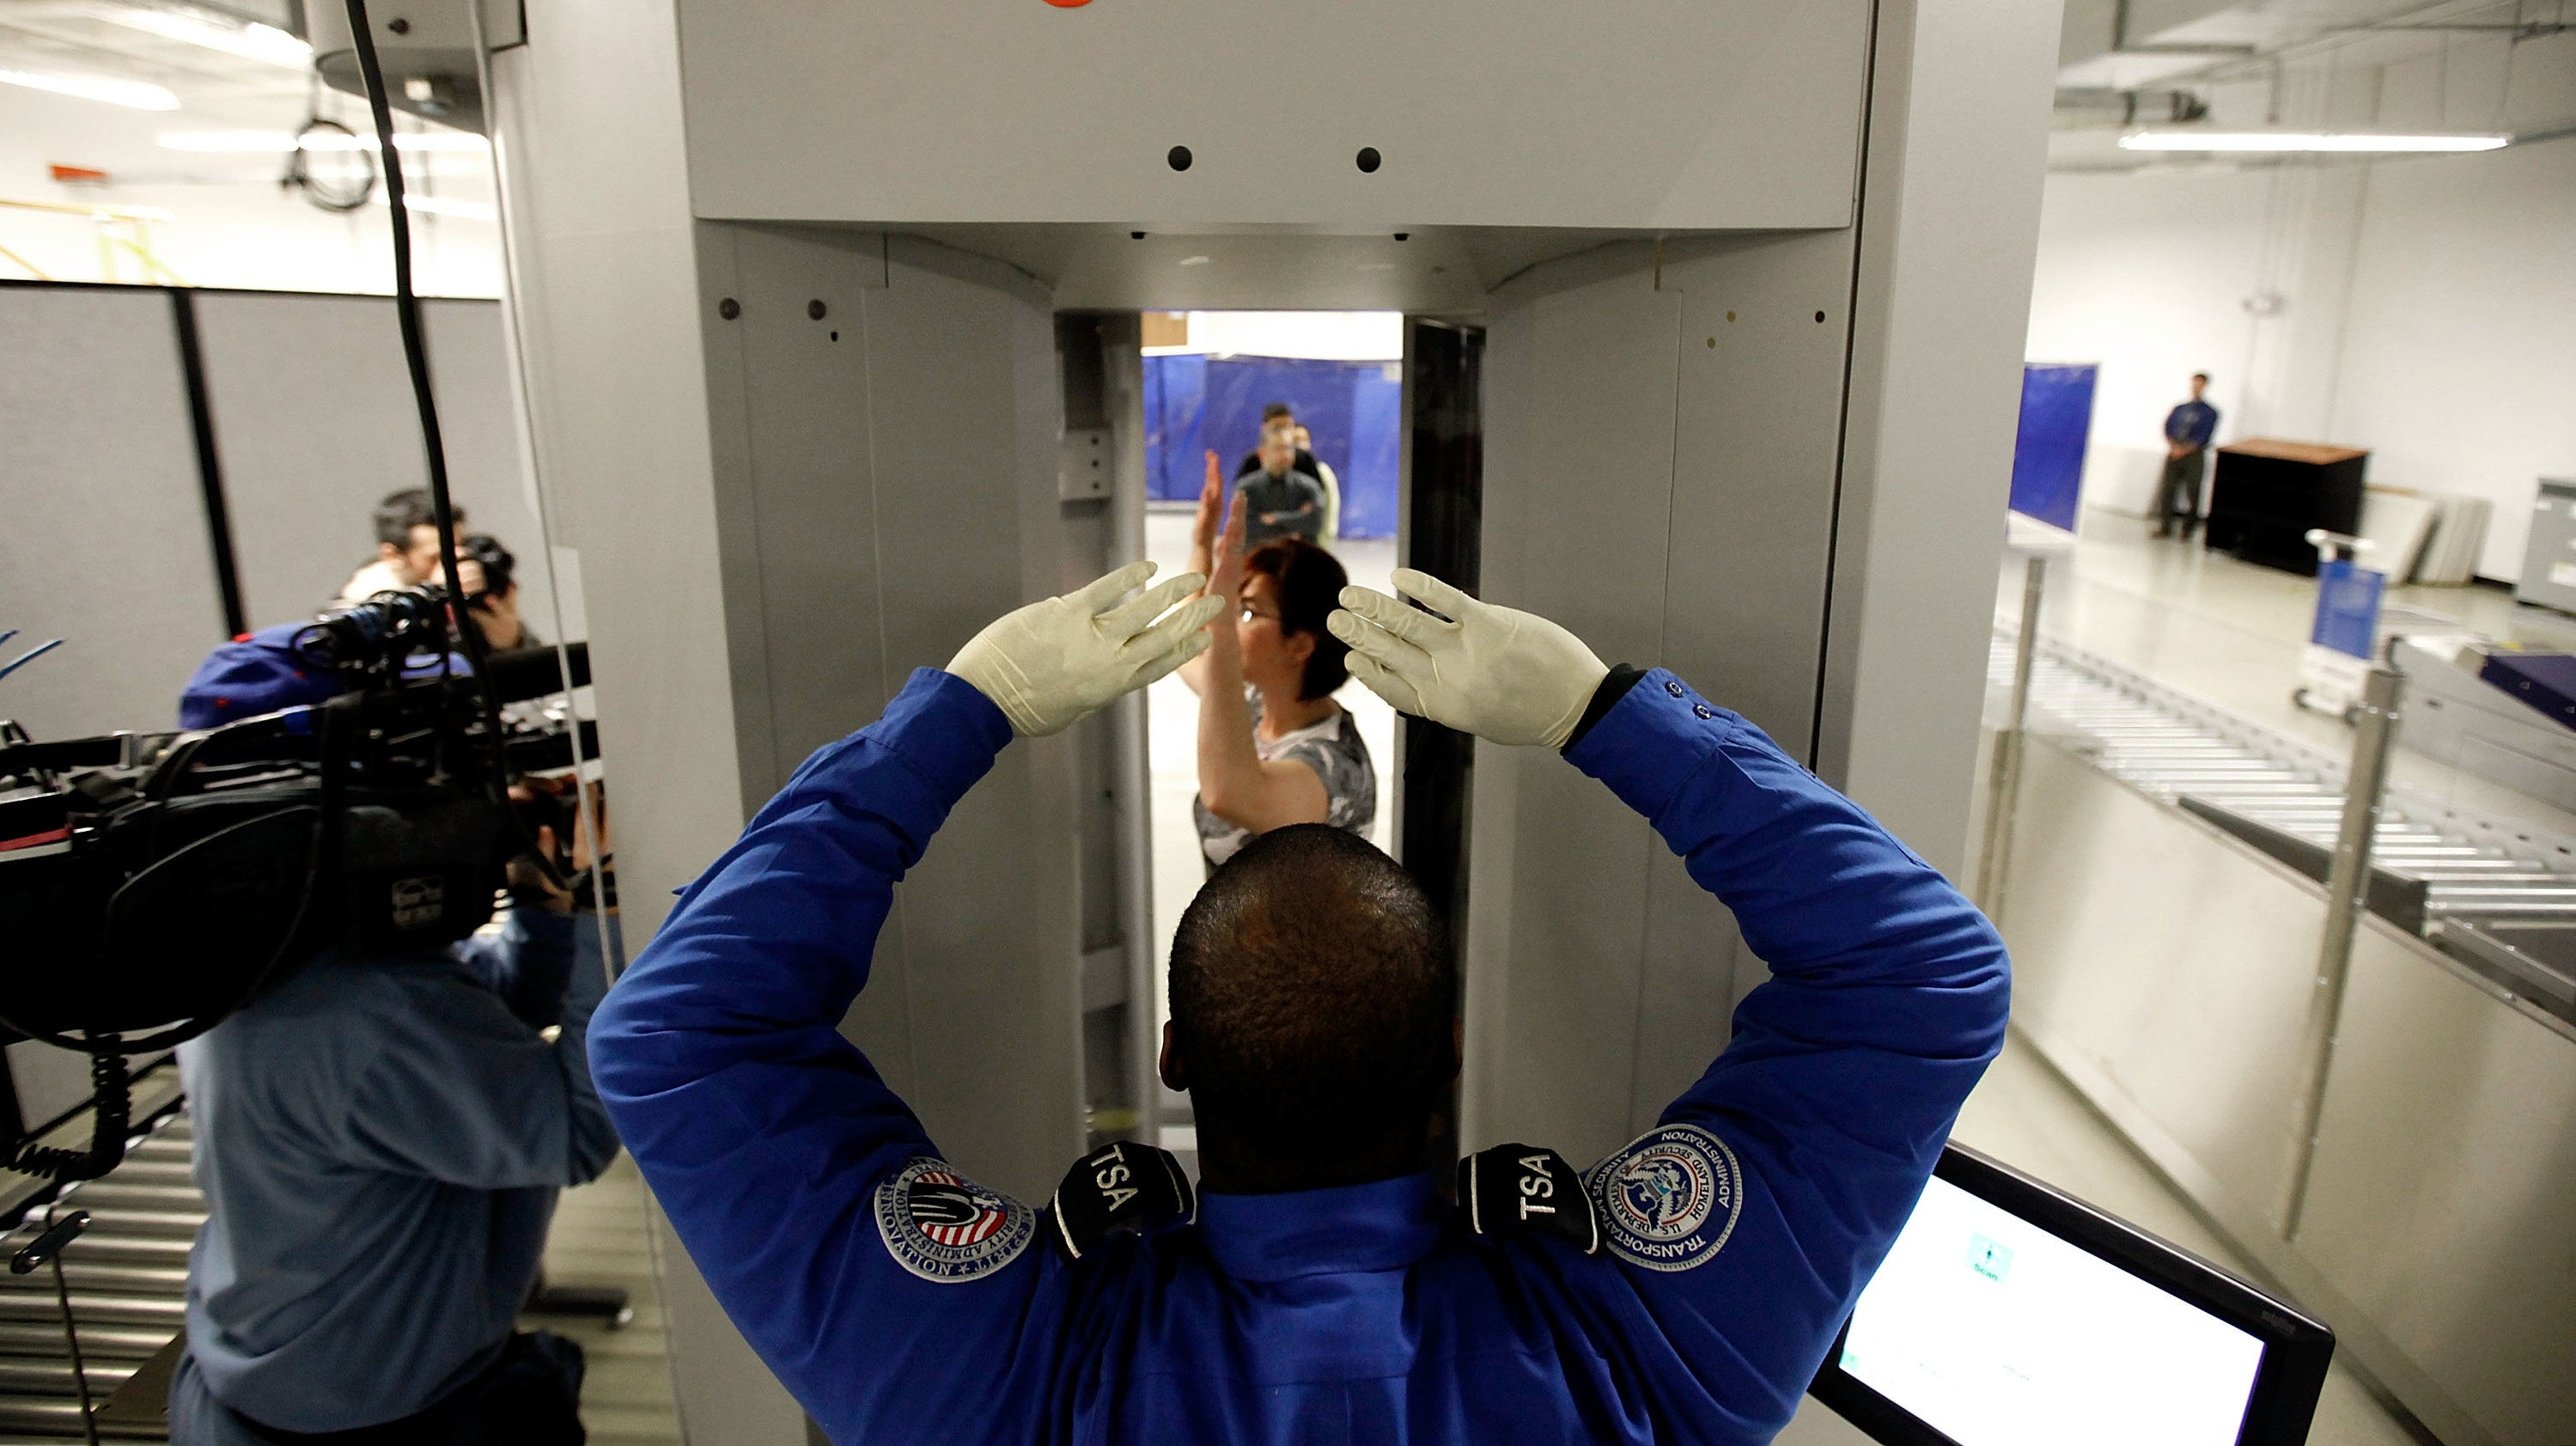 Airport Body Scanners Have A Gender Problem